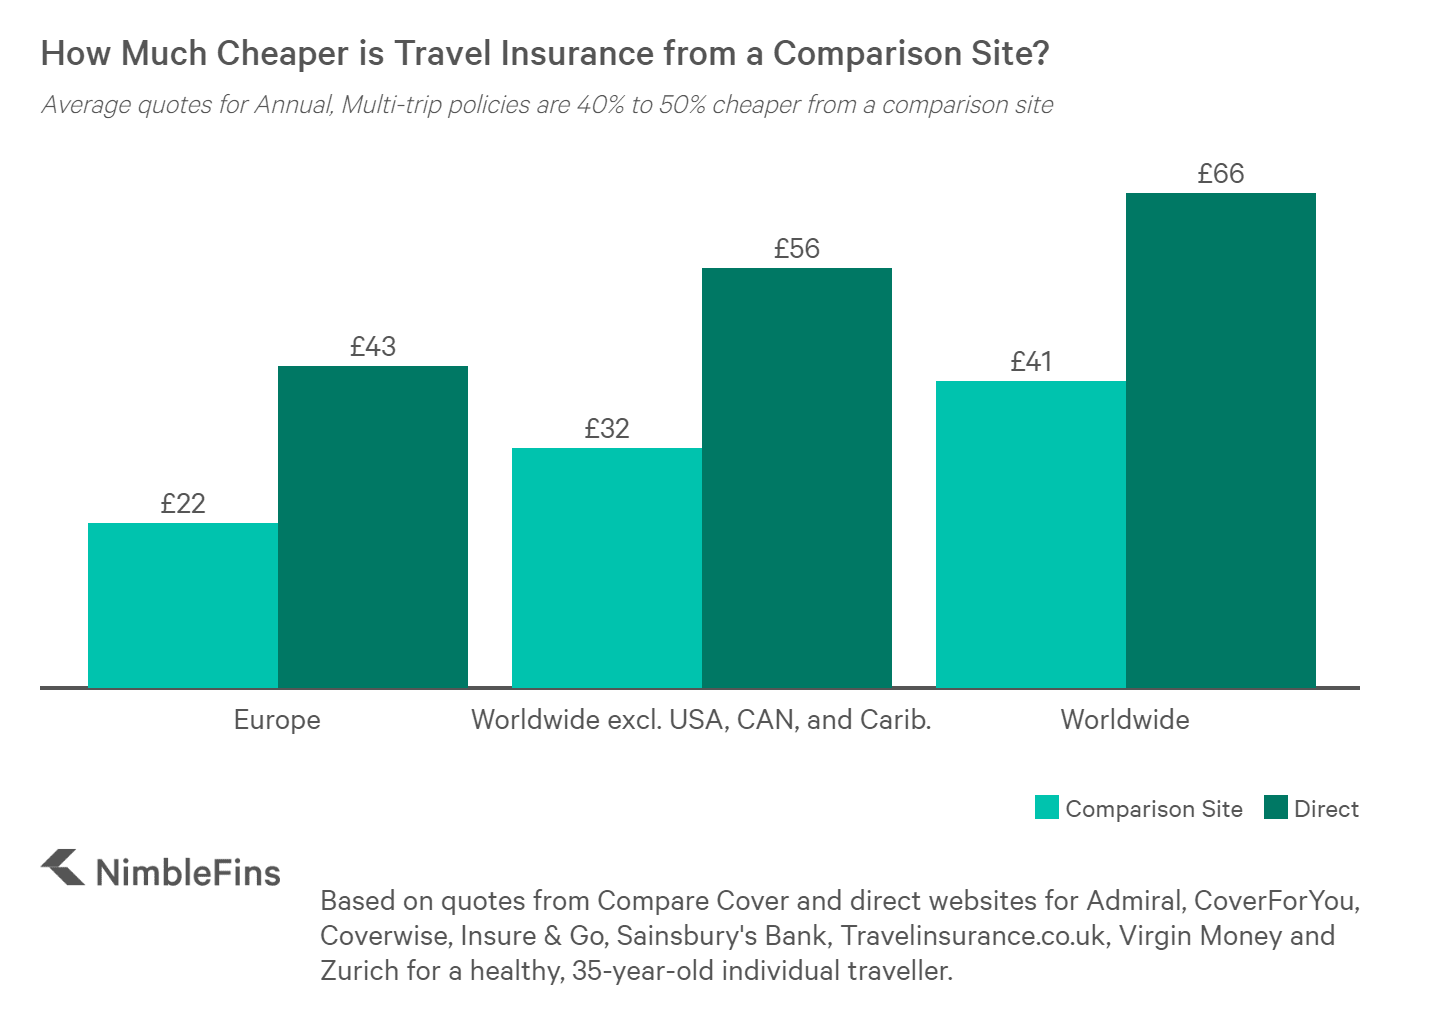 Chart comparing prices of annual travel insurance from a comparison site versus an insurer's direct product